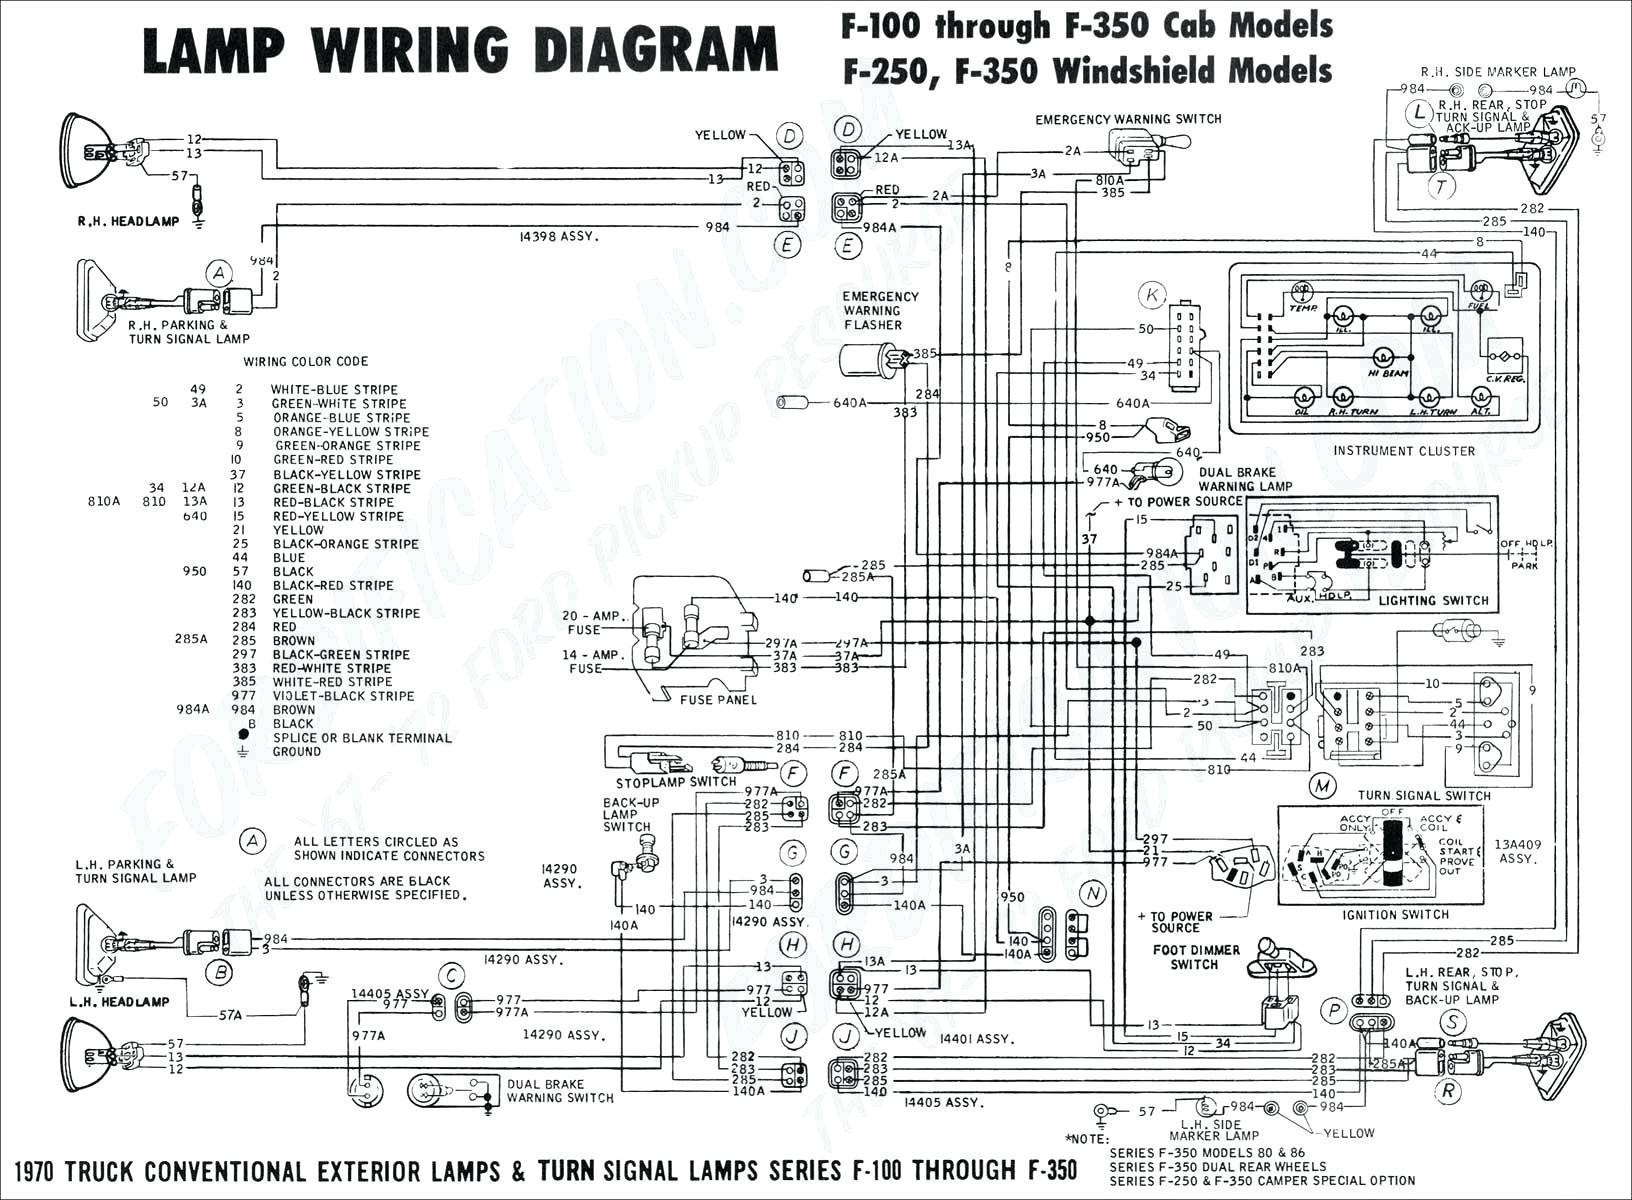 1997 Geo Metro Engine Diagram Tracker Electrical Wiring Diagrams Experts Wiring Diagram •